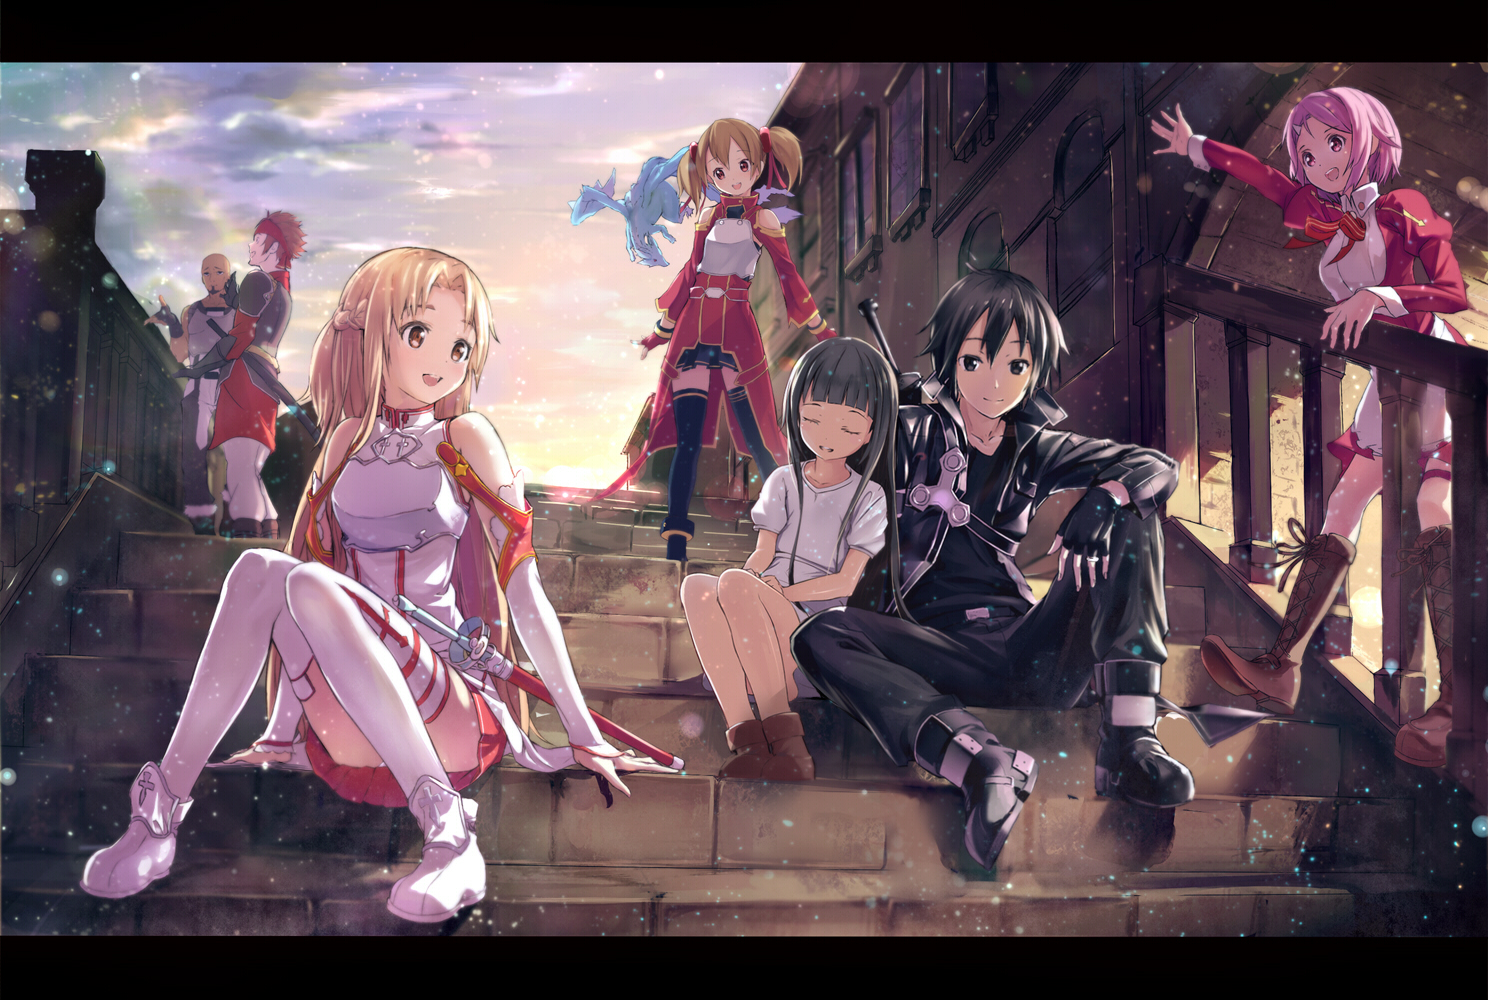 http://1.bp.blogspot.com/-Mz1fj_Ot1Is/URgrVYjLAAI/AAAAAAAABpo/xiS3oGSueMA/s1600/Sword-Art-Online-Wallpaper-HD-.jpg